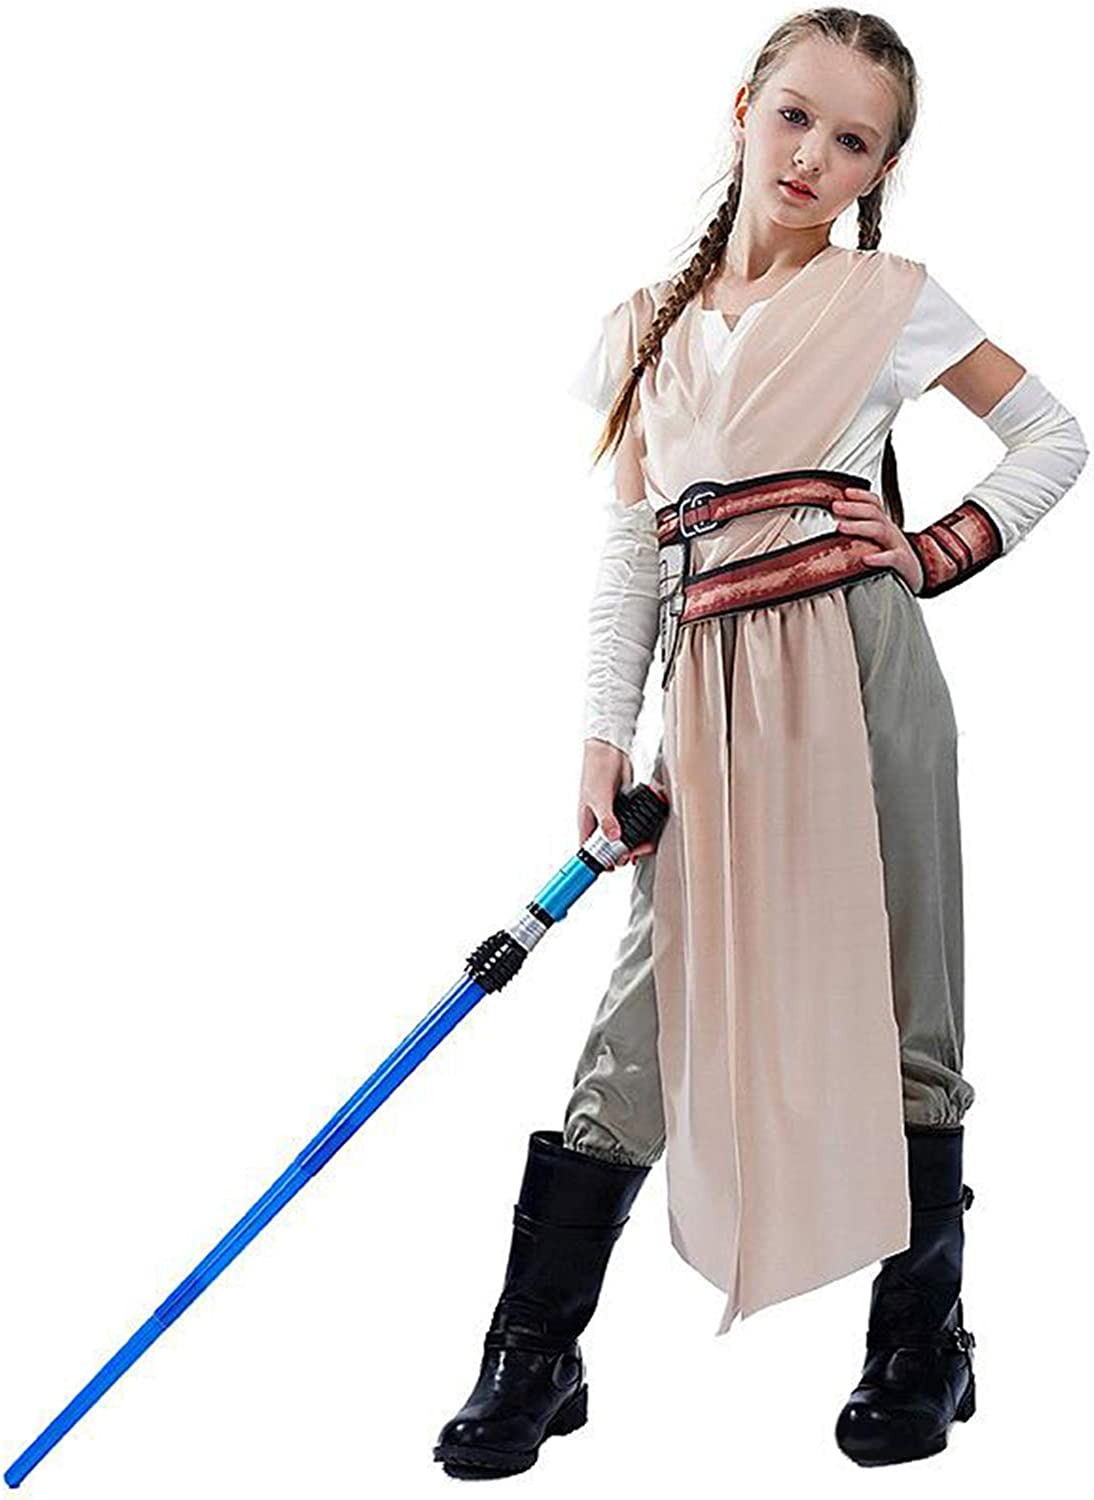 HOMELEX Rey Costume Deluxe Outfits Movie SW 9 Rise of Skywalker New Rey Cosplay Suit for Kids